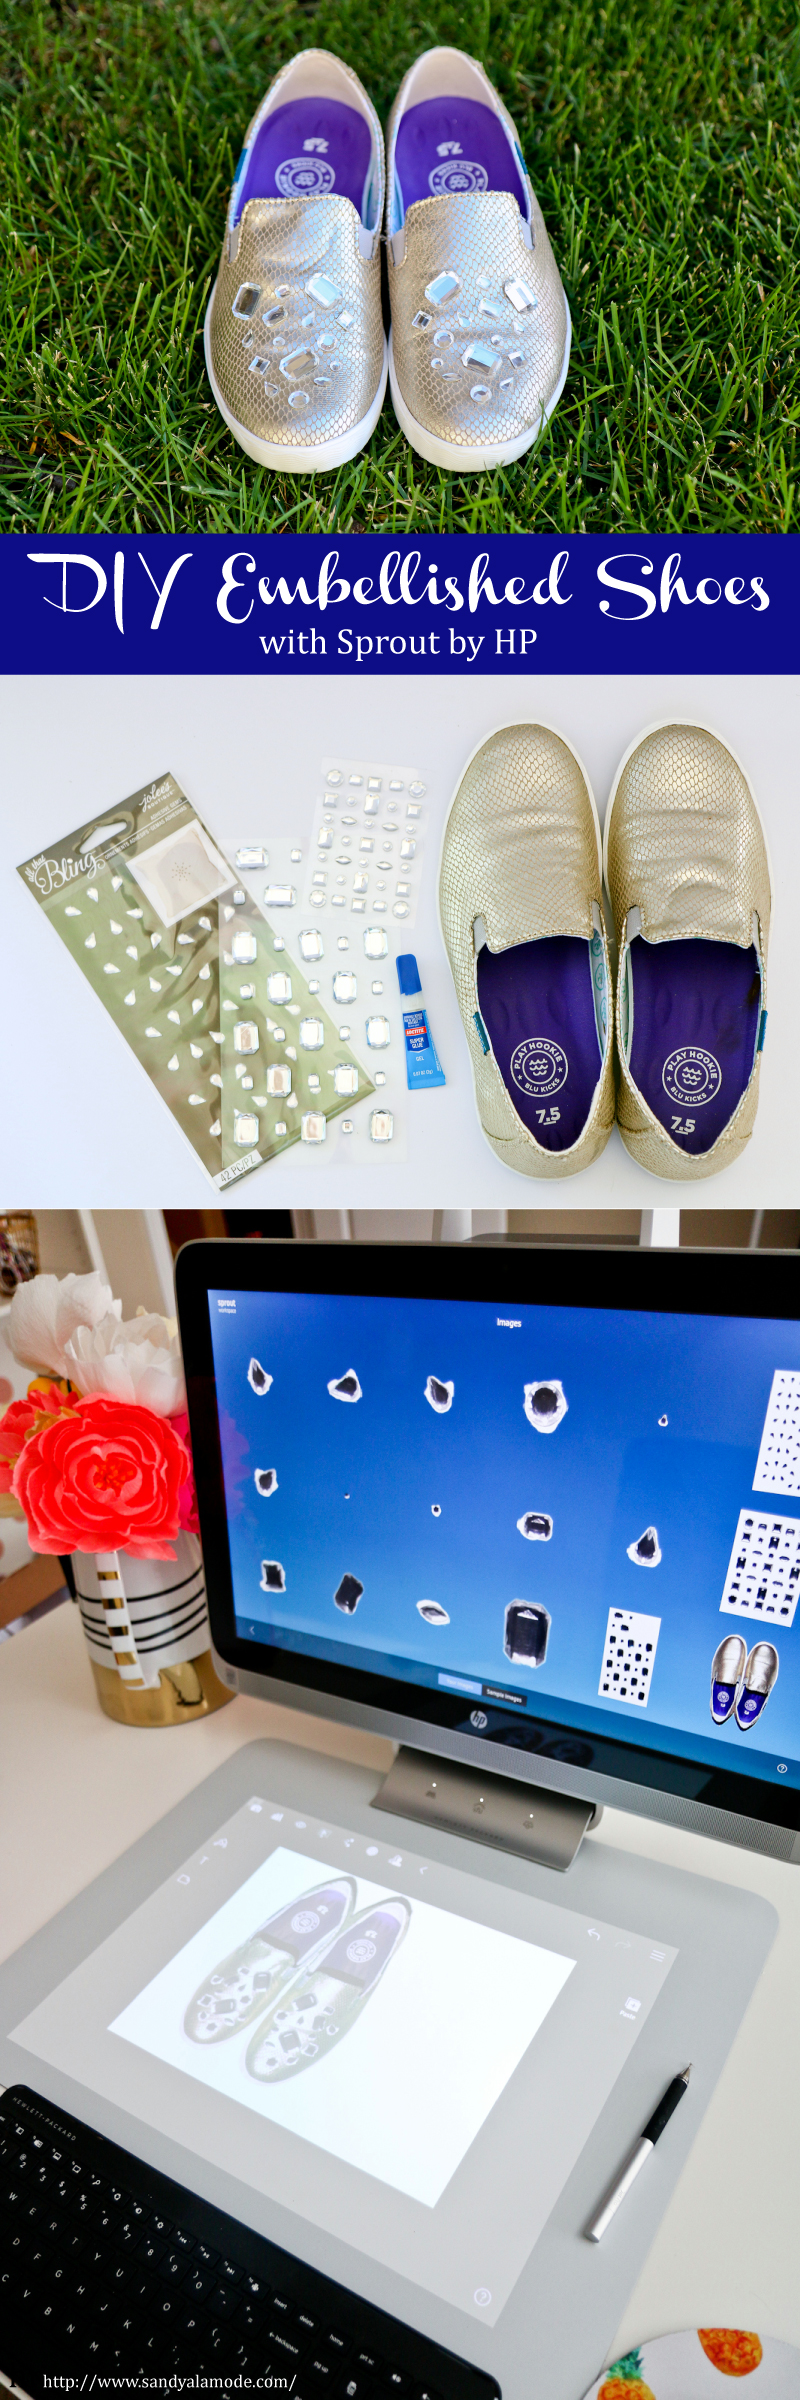 DIY Embellished Shoes with Sprout by HP